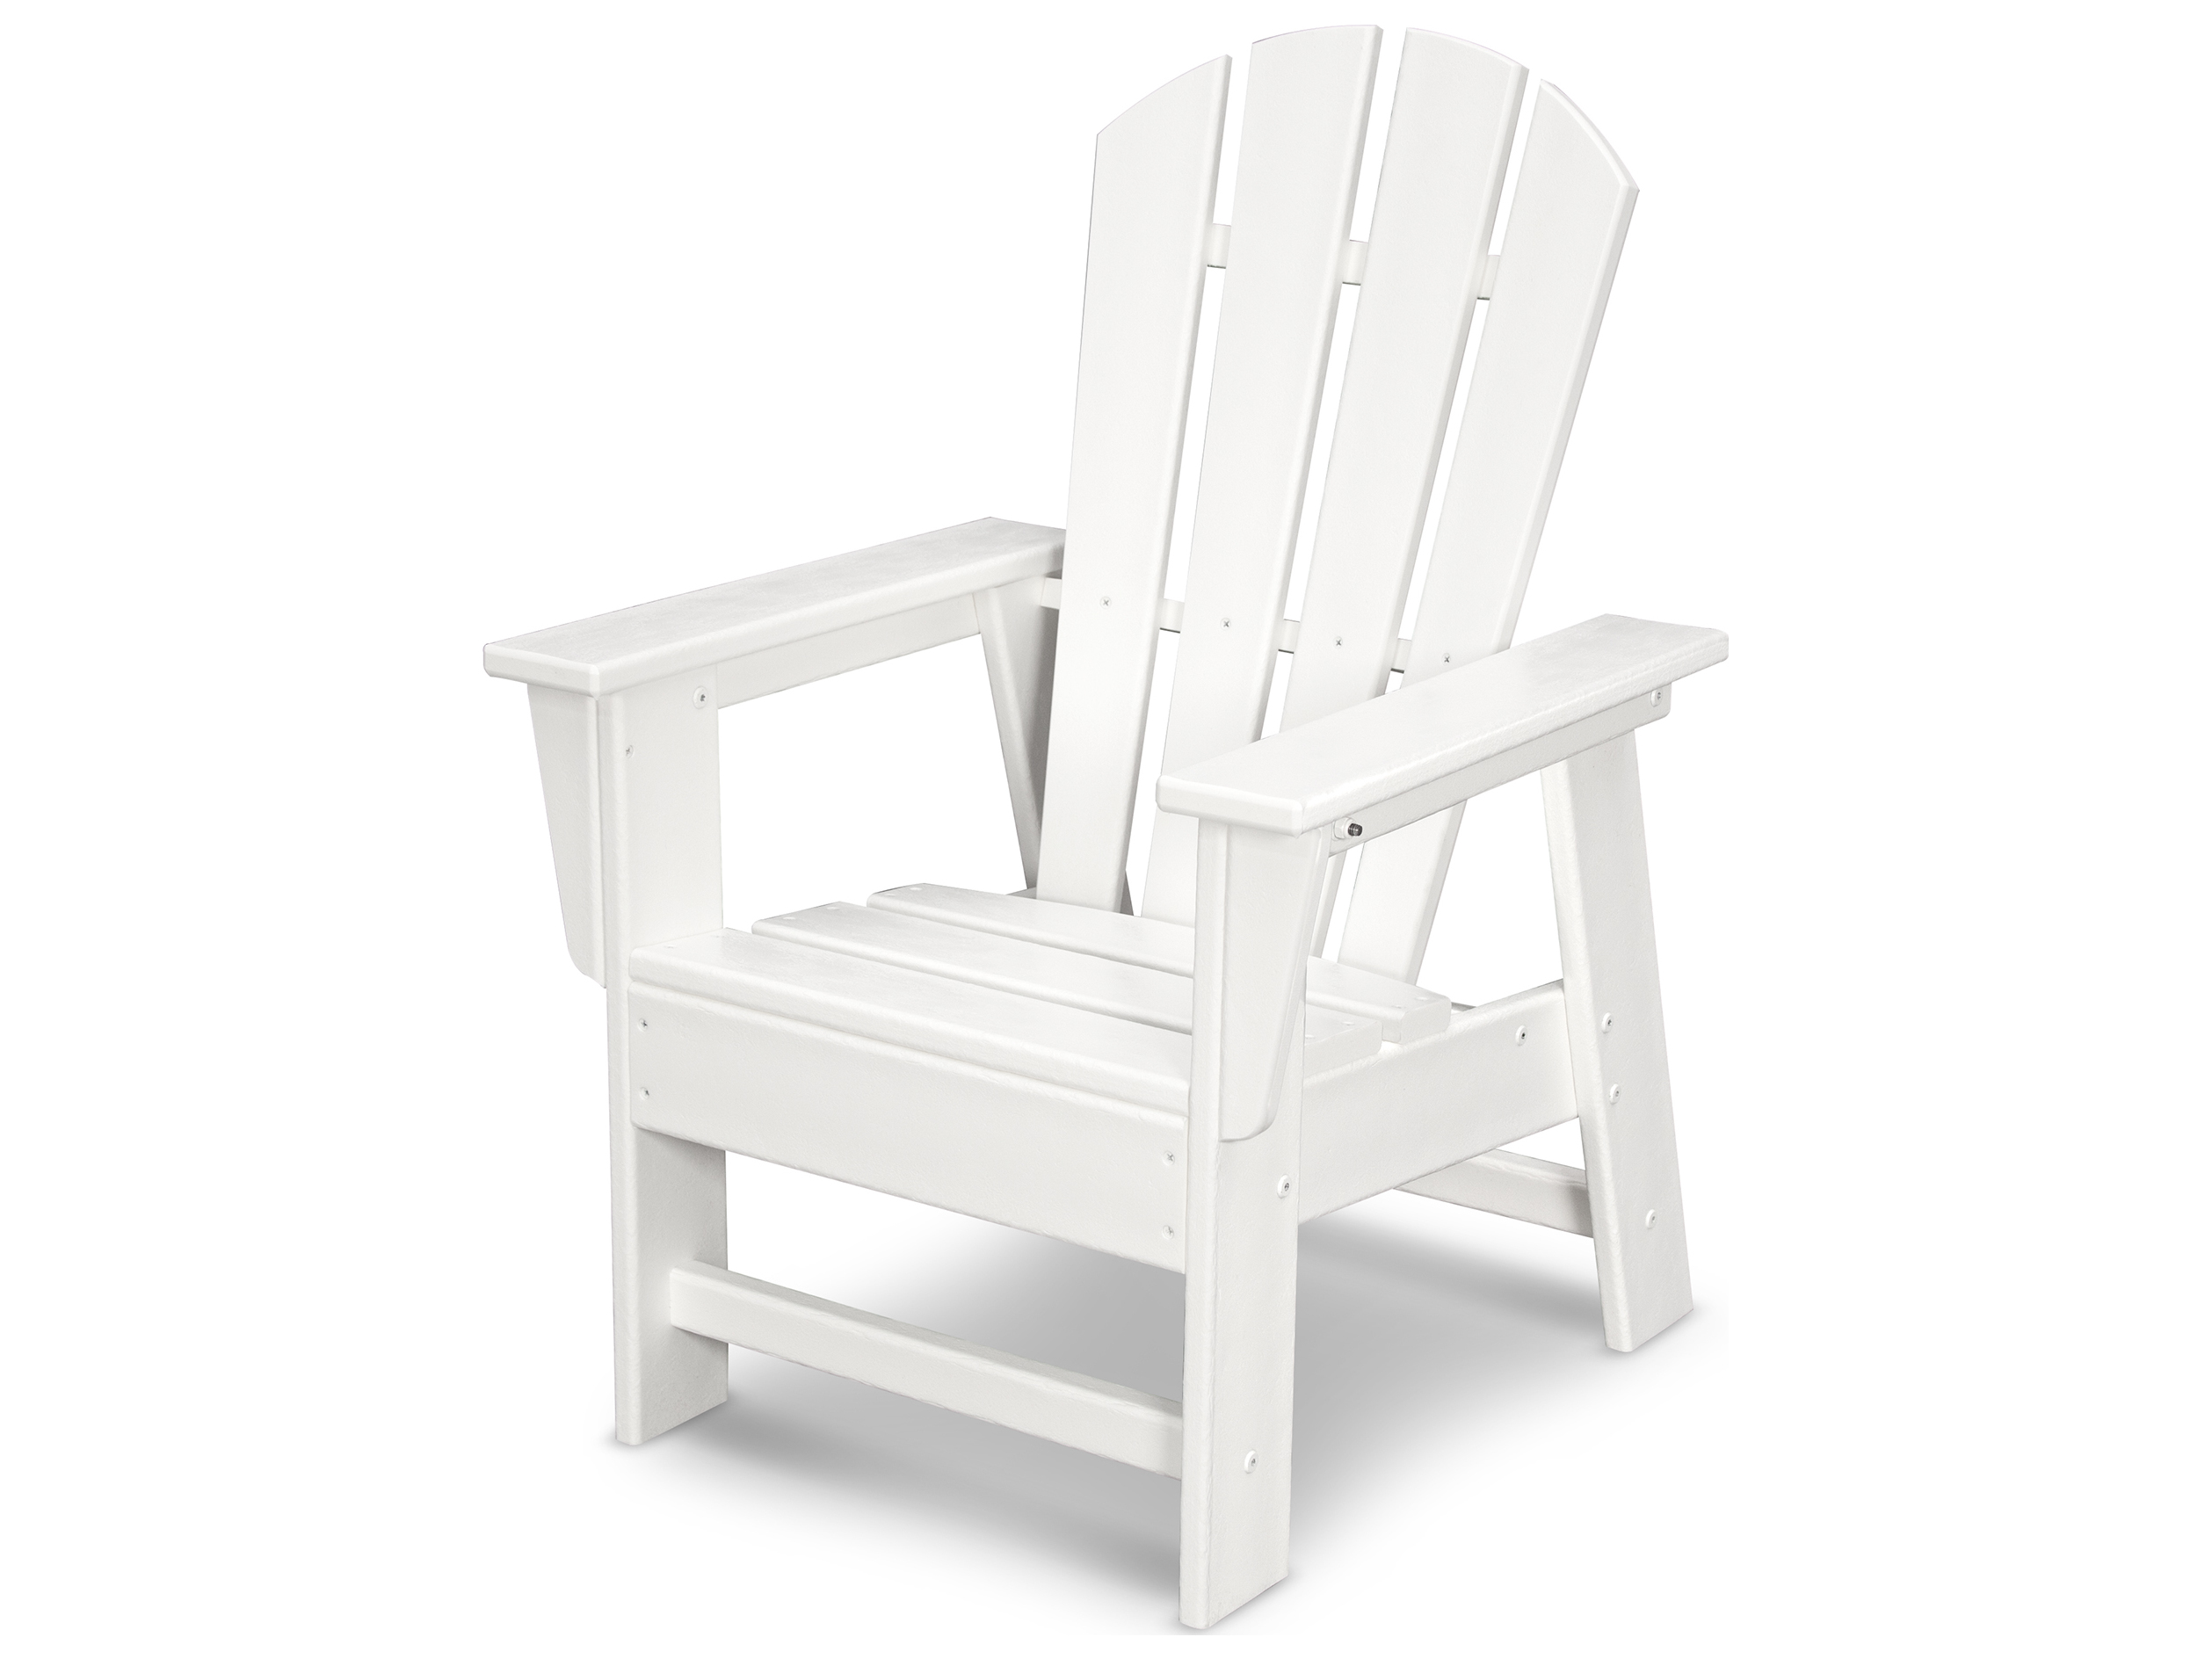 poly wood adirondack chairs dining chair polywood south beach recycled plastic child size